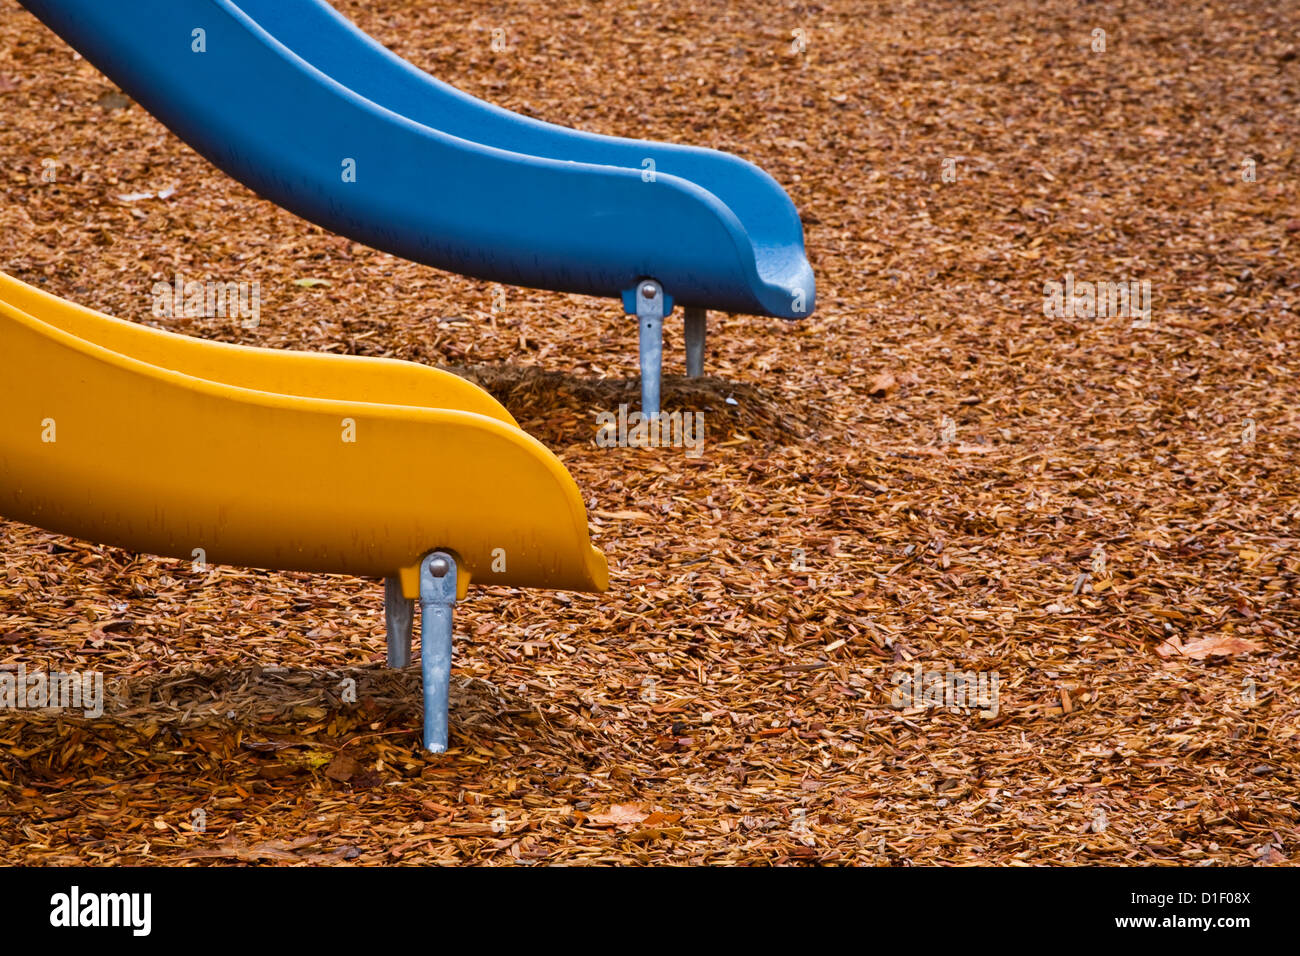 Abstract image of two childrens slides at a vacant playground - Stock Image